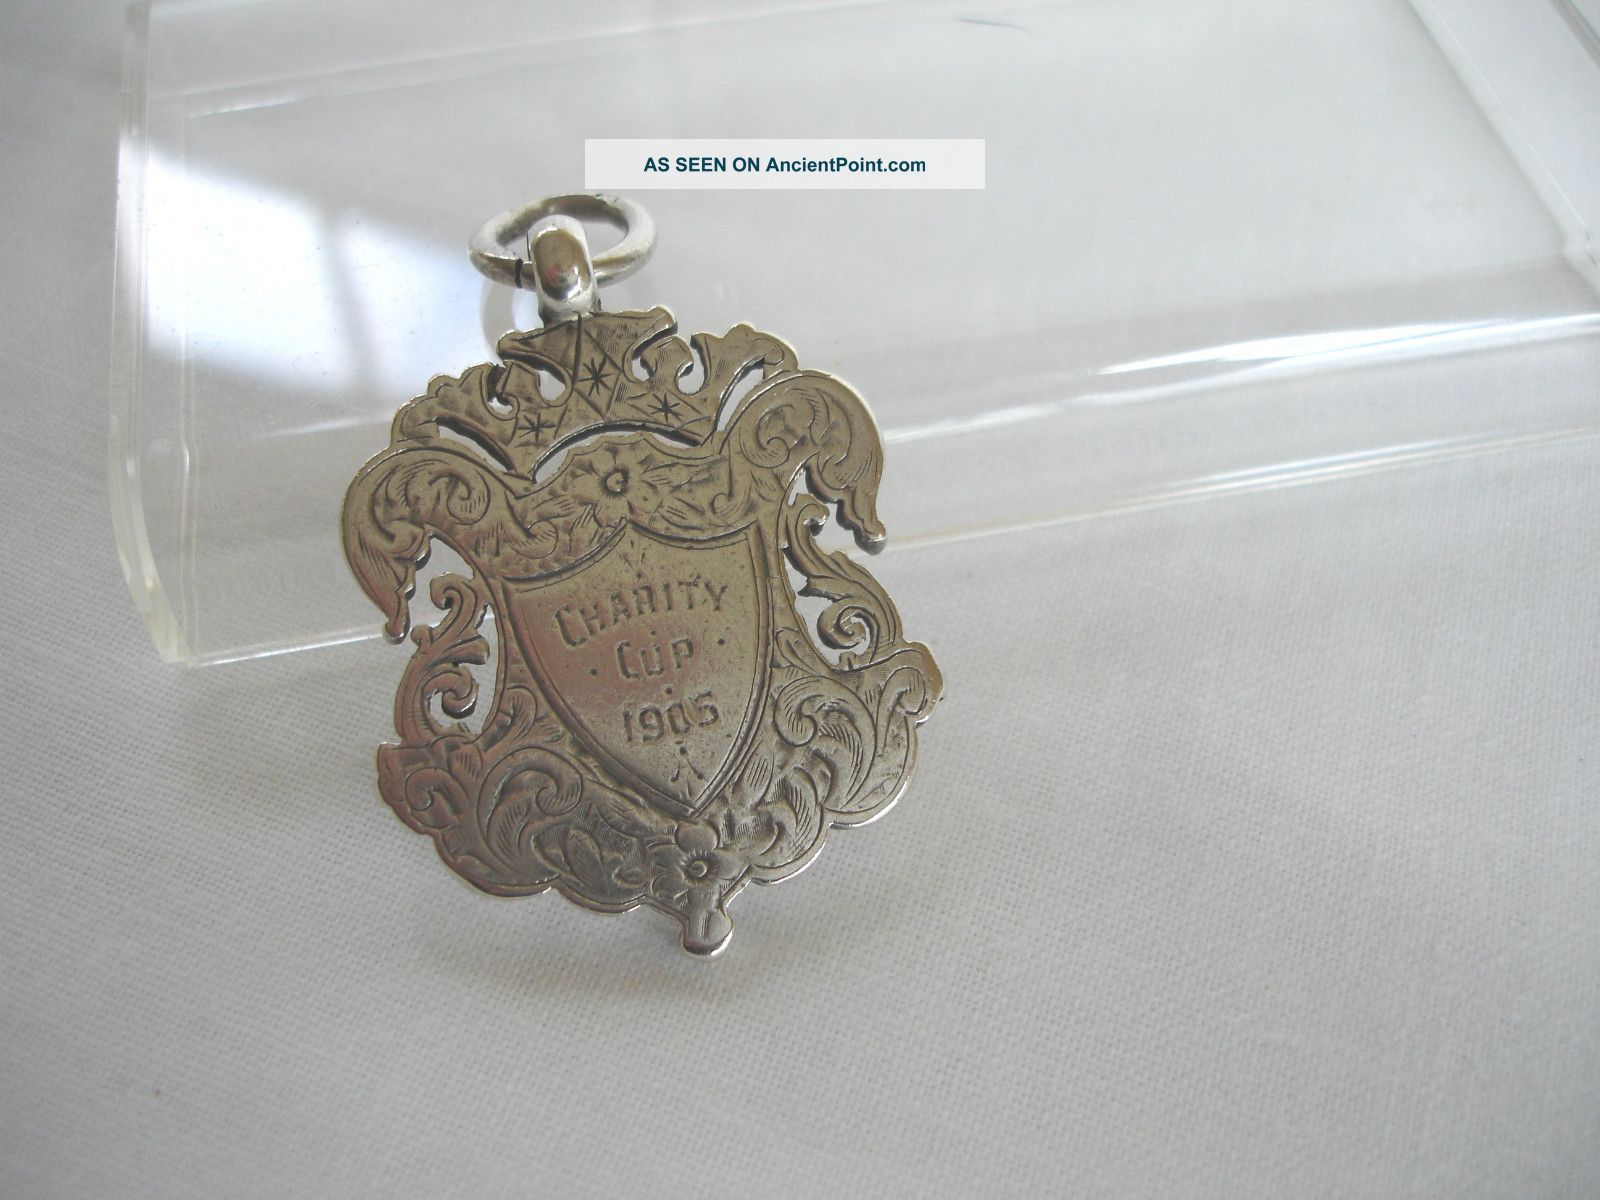 Antique Solid Silver Fob Charity Cup 1905 Nryfa 23gms Pocket Watches/ Chains/ Fobs photo